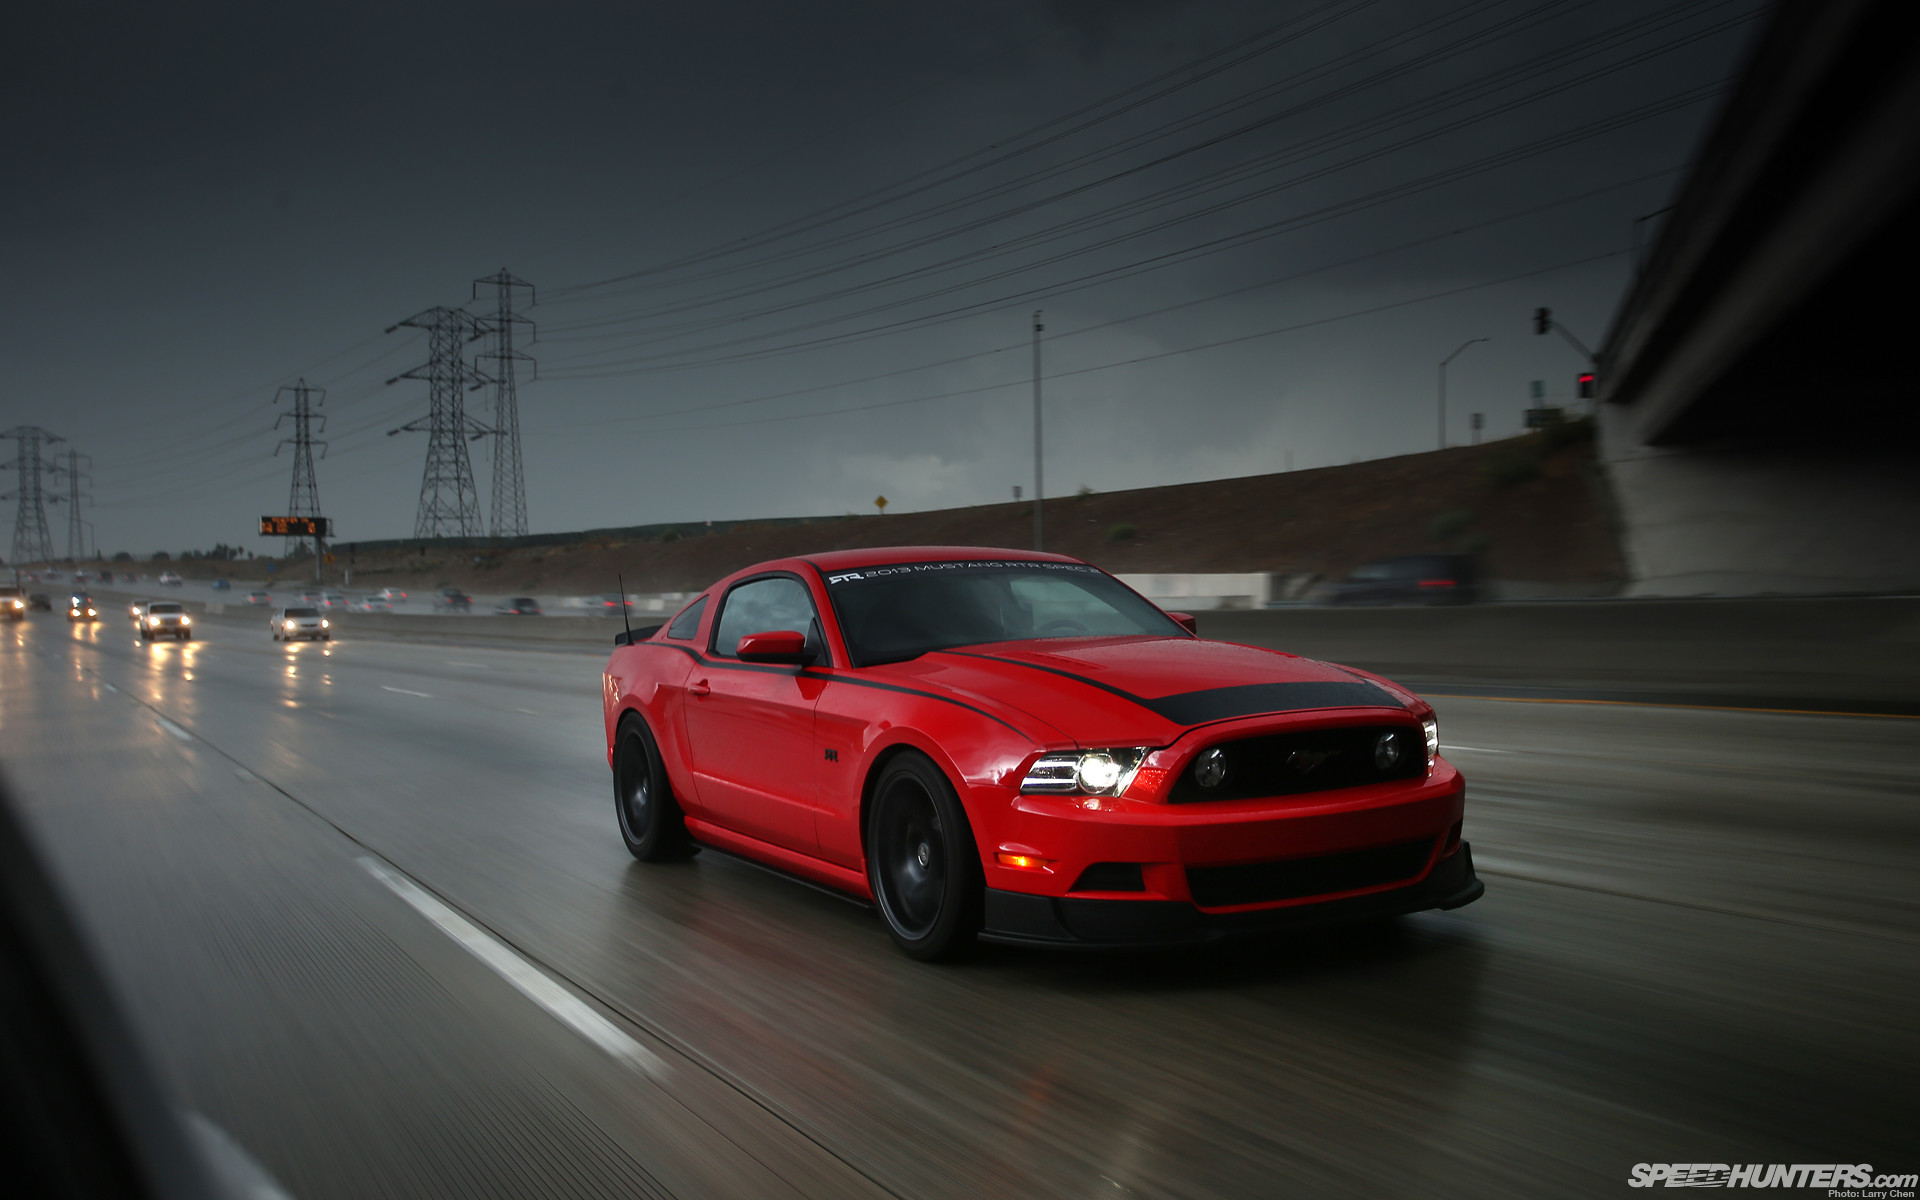 1920x1200 Ford mustang highway road cars vehicles wallpaper |  | 39869 |  WallpaperUP